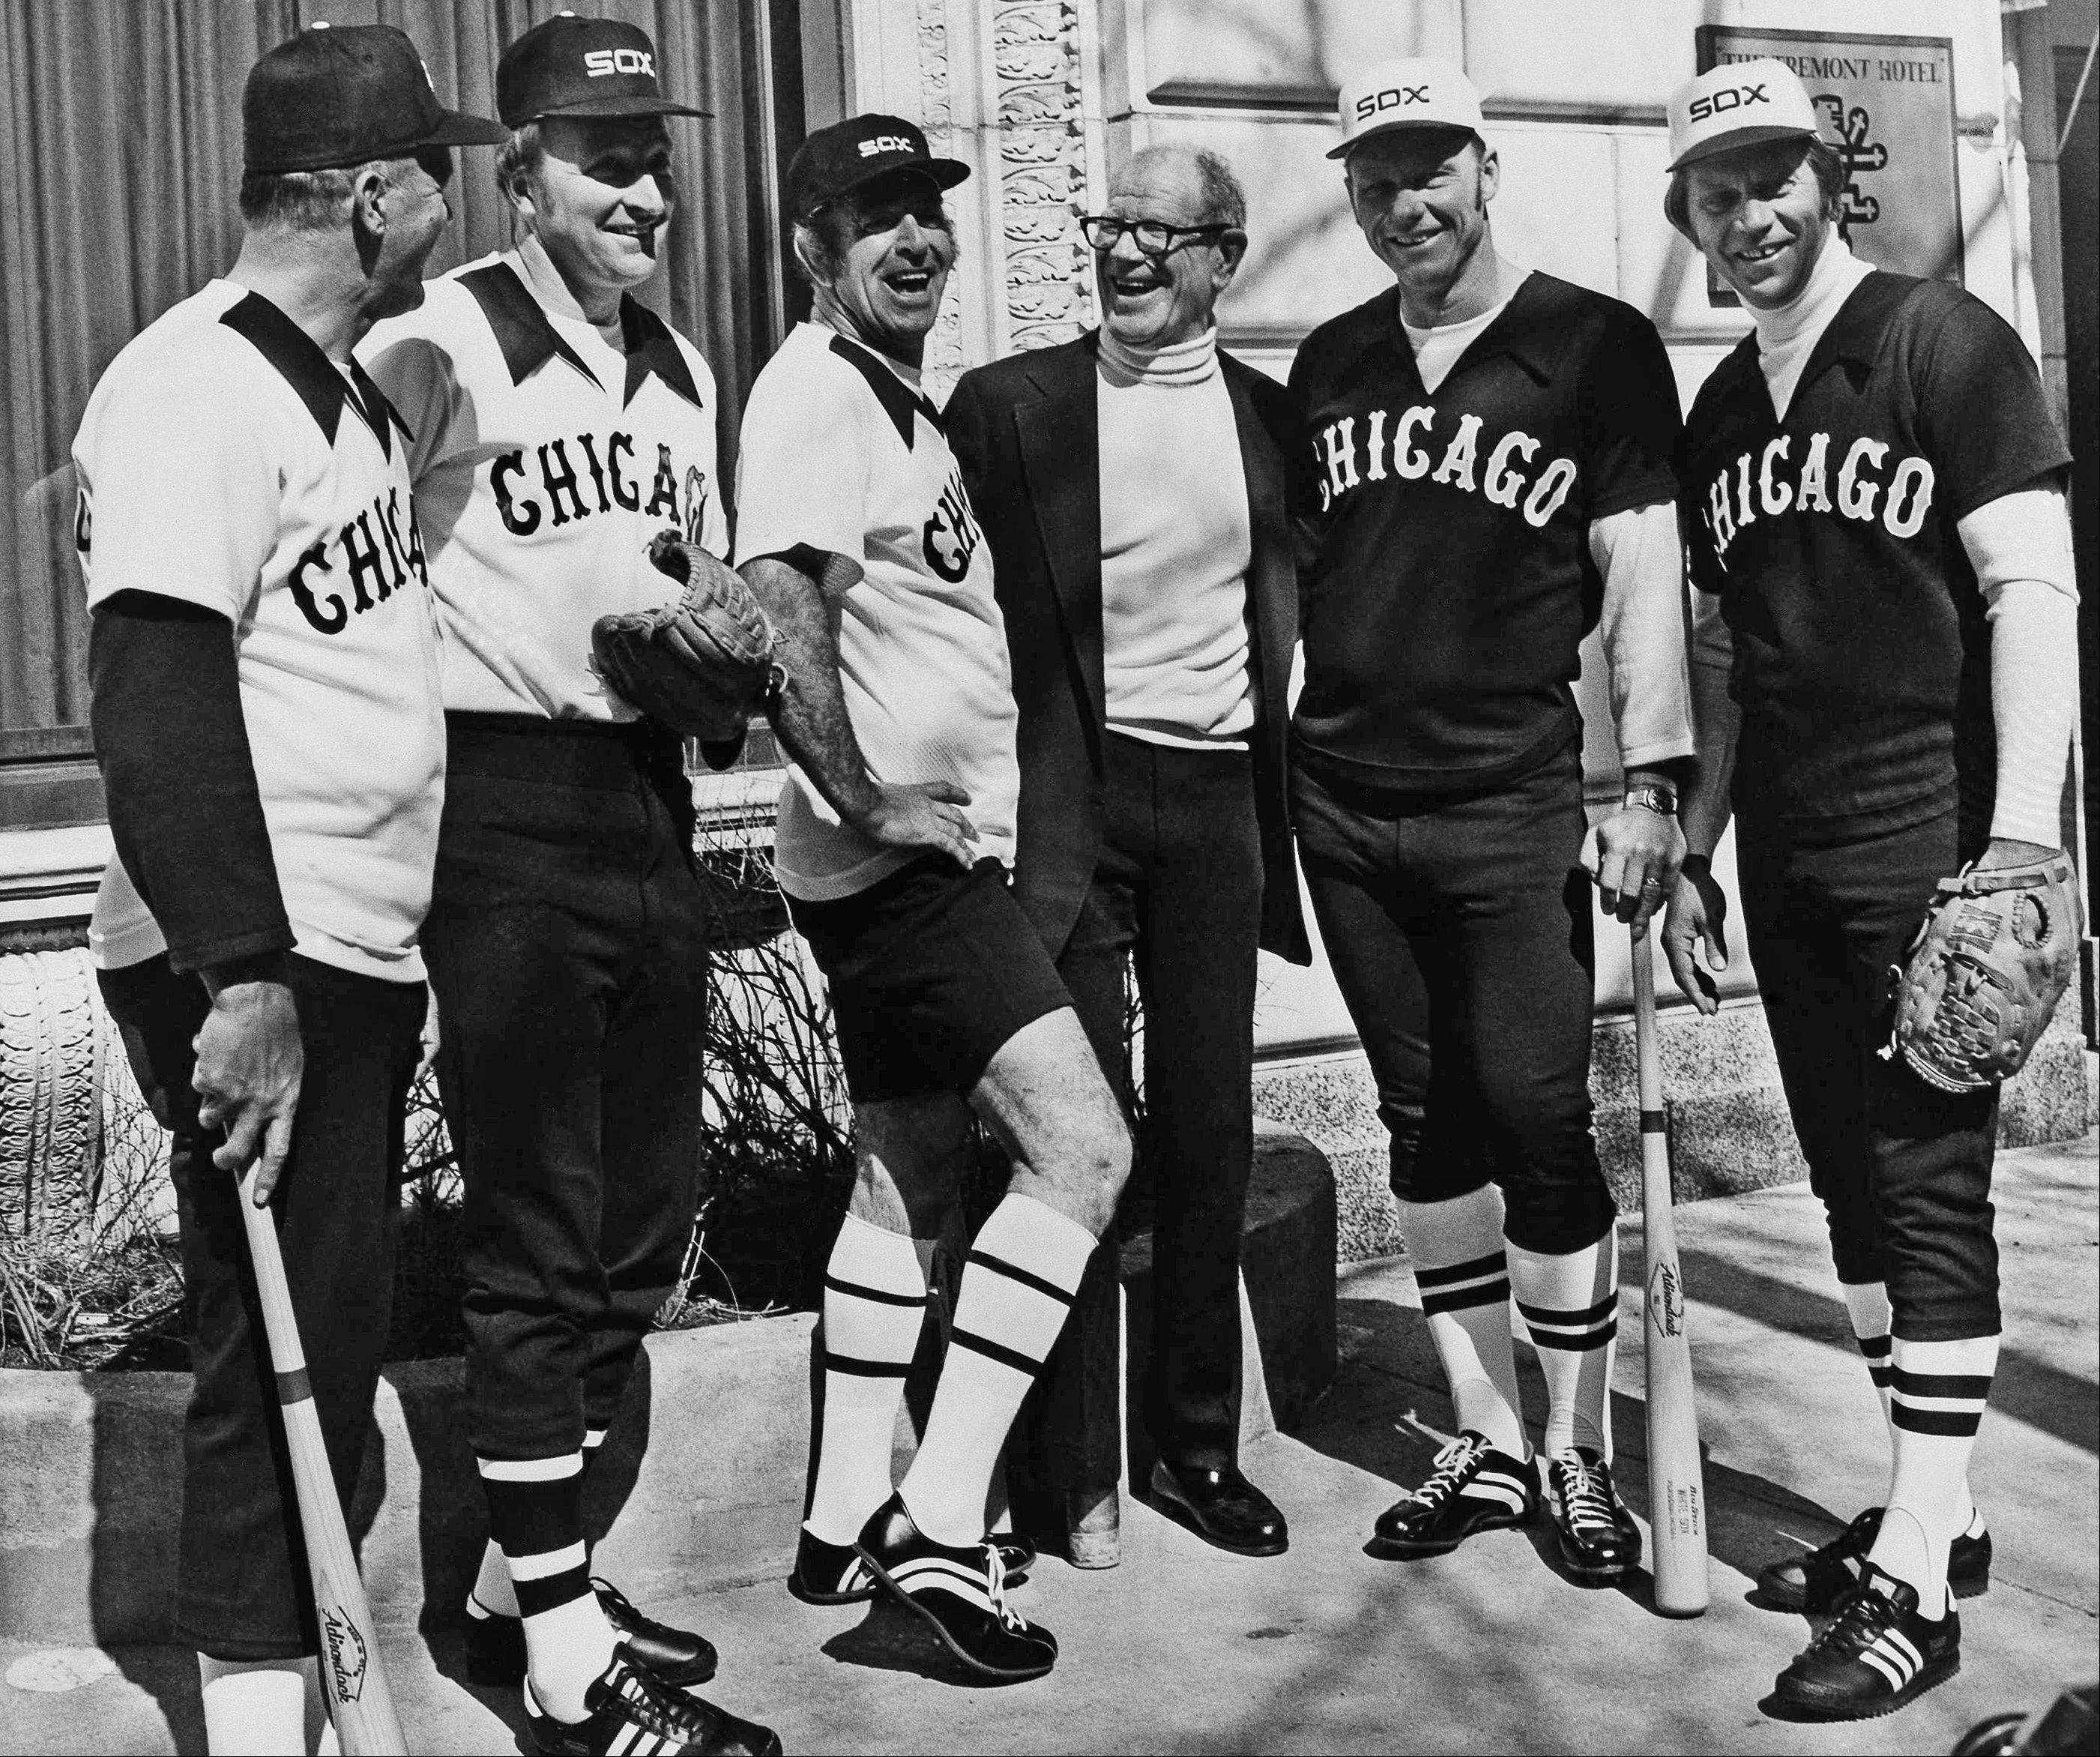 "Five retired MaJor League ball players appear in Chicago, Tuesday, March 10, 1976, with Chicago White Sox owner Bill Veeck as they showed new uniforms that the White Sox will be wearing this season. Three home game uniforms at left are worn by (from left) Bill ""Moose"" Skowron, Mo Drabowski and Jim K. Rivera, wearing home hot weather uniforms. At right are the road uniforms worn by Dave Nicholson and Dan Osinski."